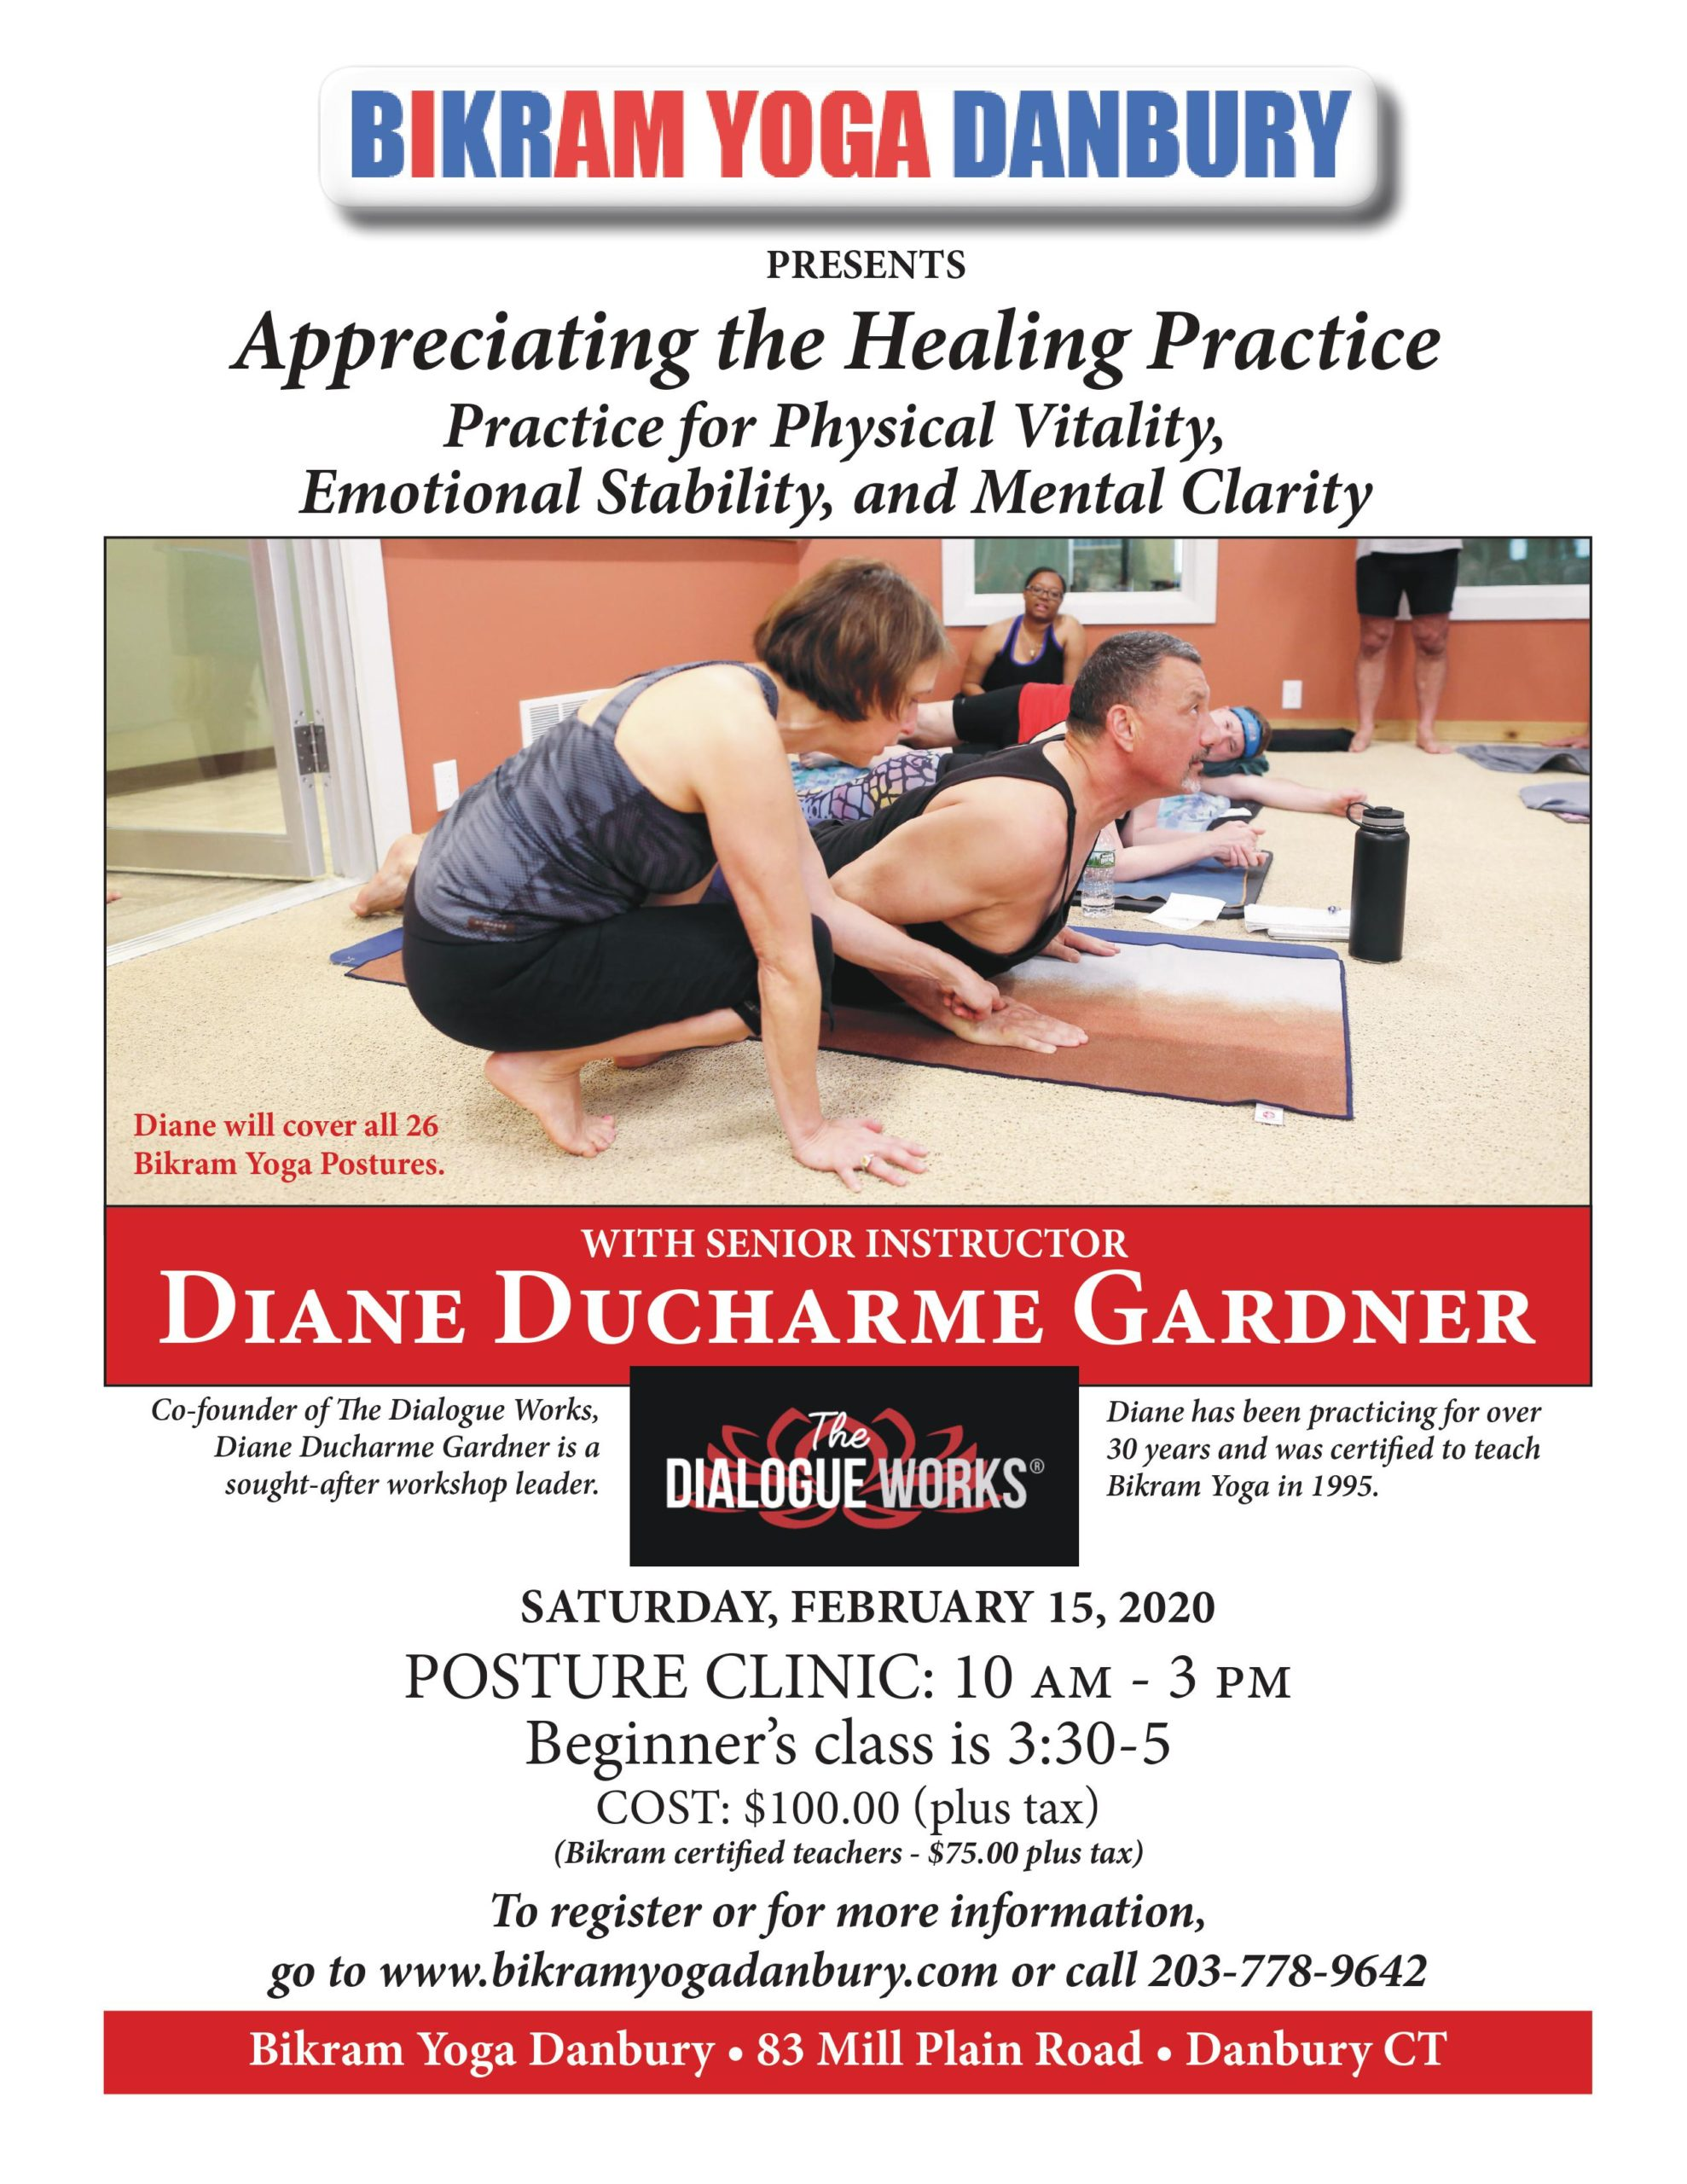 Appreciating the Healing Practice with Diane Ducharme Gardner – February 15, 2020